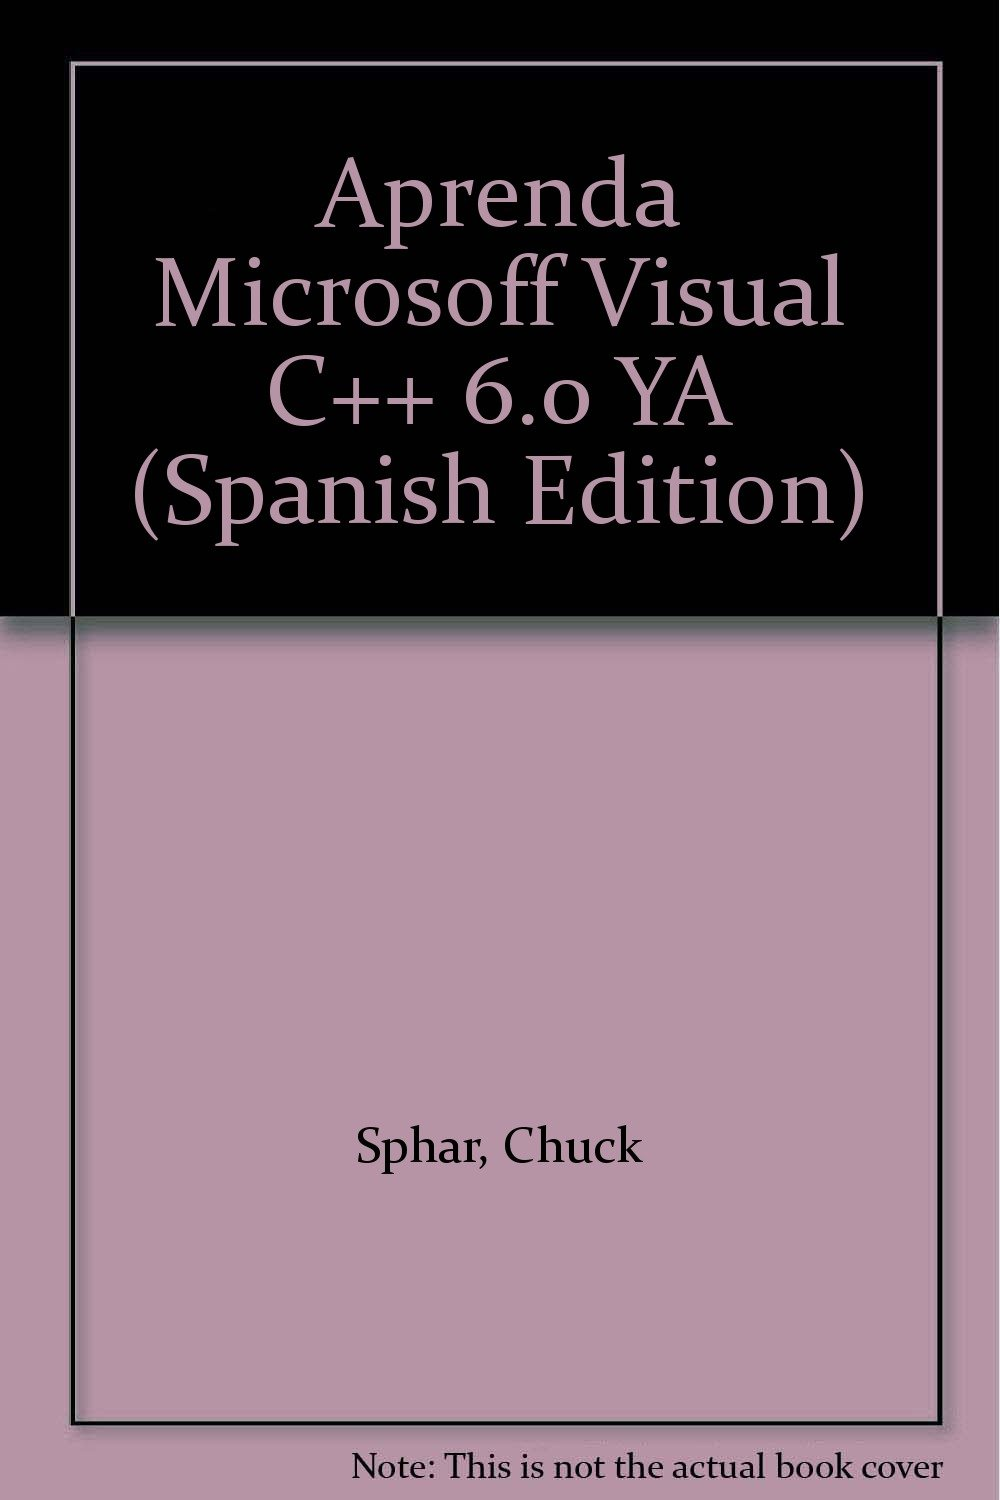 Download Aprenda Microsoff Visual C++ 6.0 YA (Spanish Edition) PDF